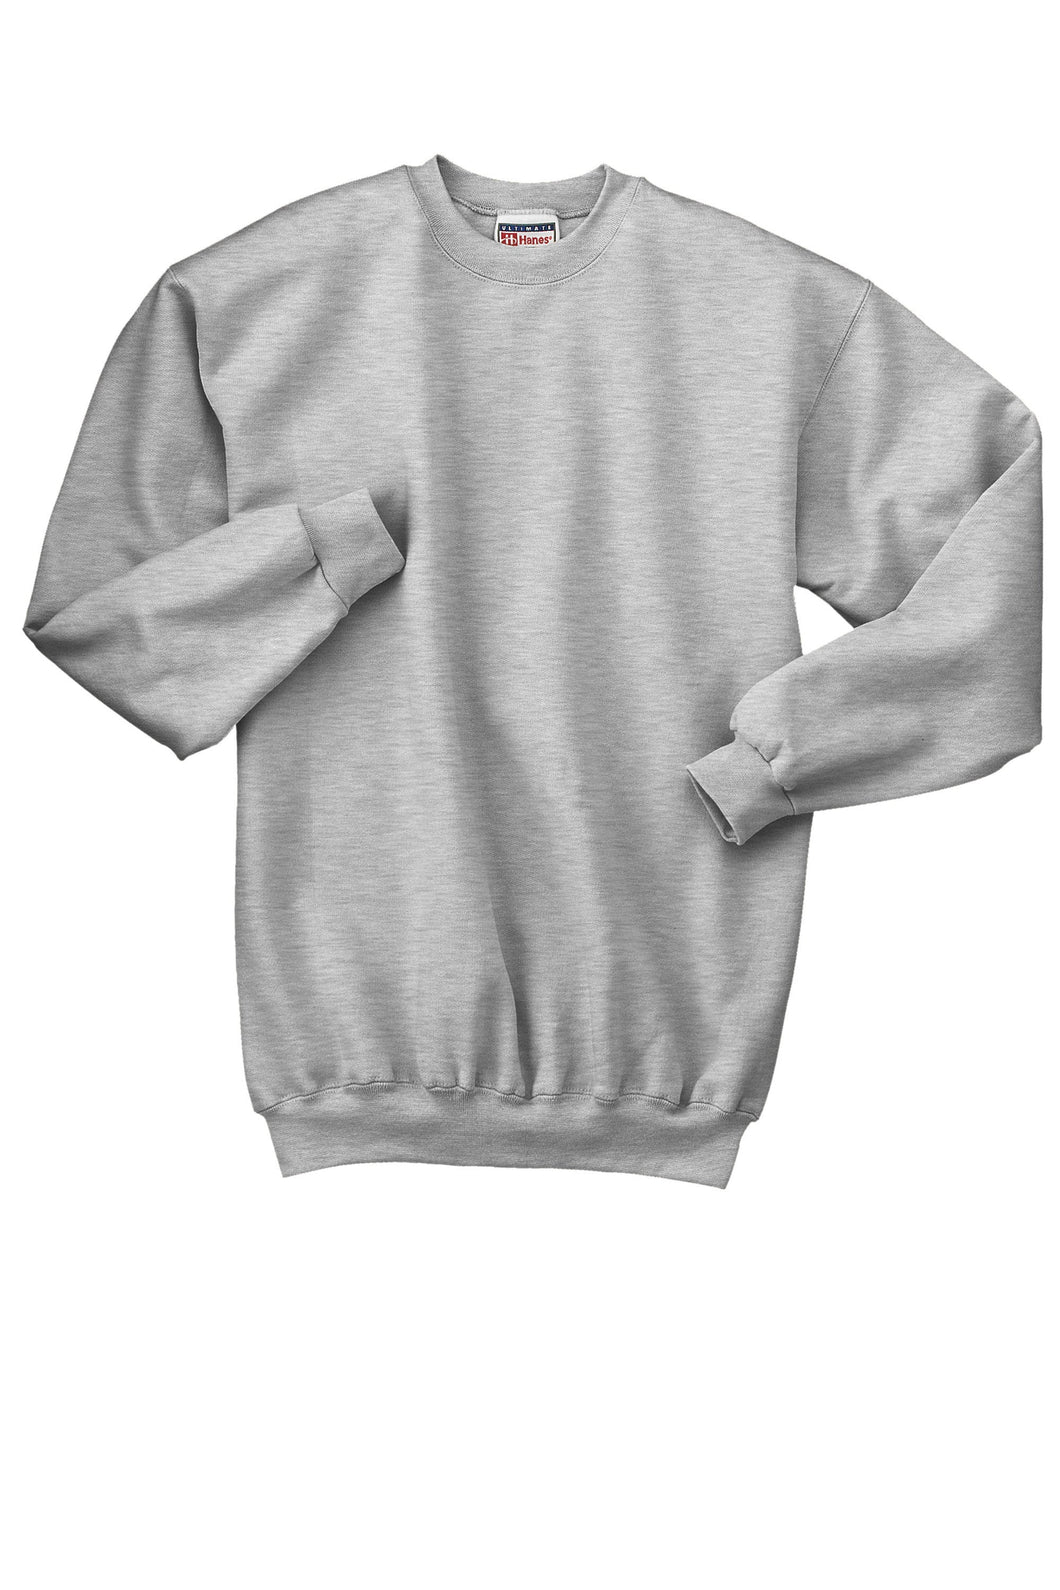 Custom Branded Hanes Crew Sweatshirt - Livestock Brand - Farm and Ranch Logo - Personalized Sweatshirt - Custom Logo Apparel - Ranch Wear